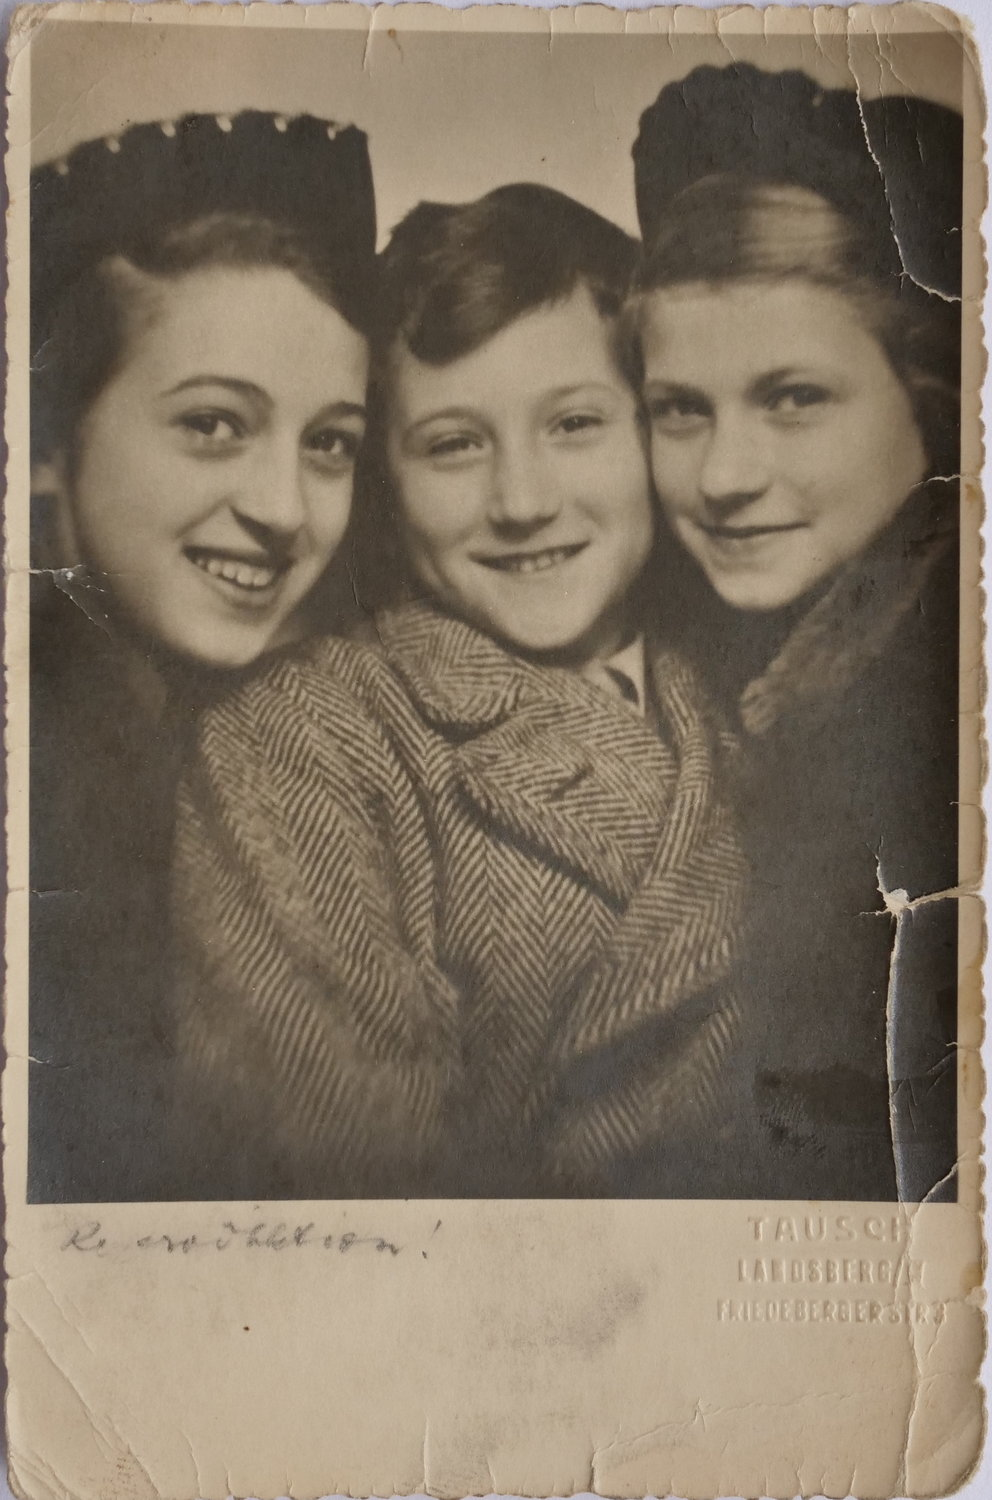 From left, Cele, Herb and Margaret Gildin were split up and sent to live with non-Jewish families in Sweden from Germany in 1939.